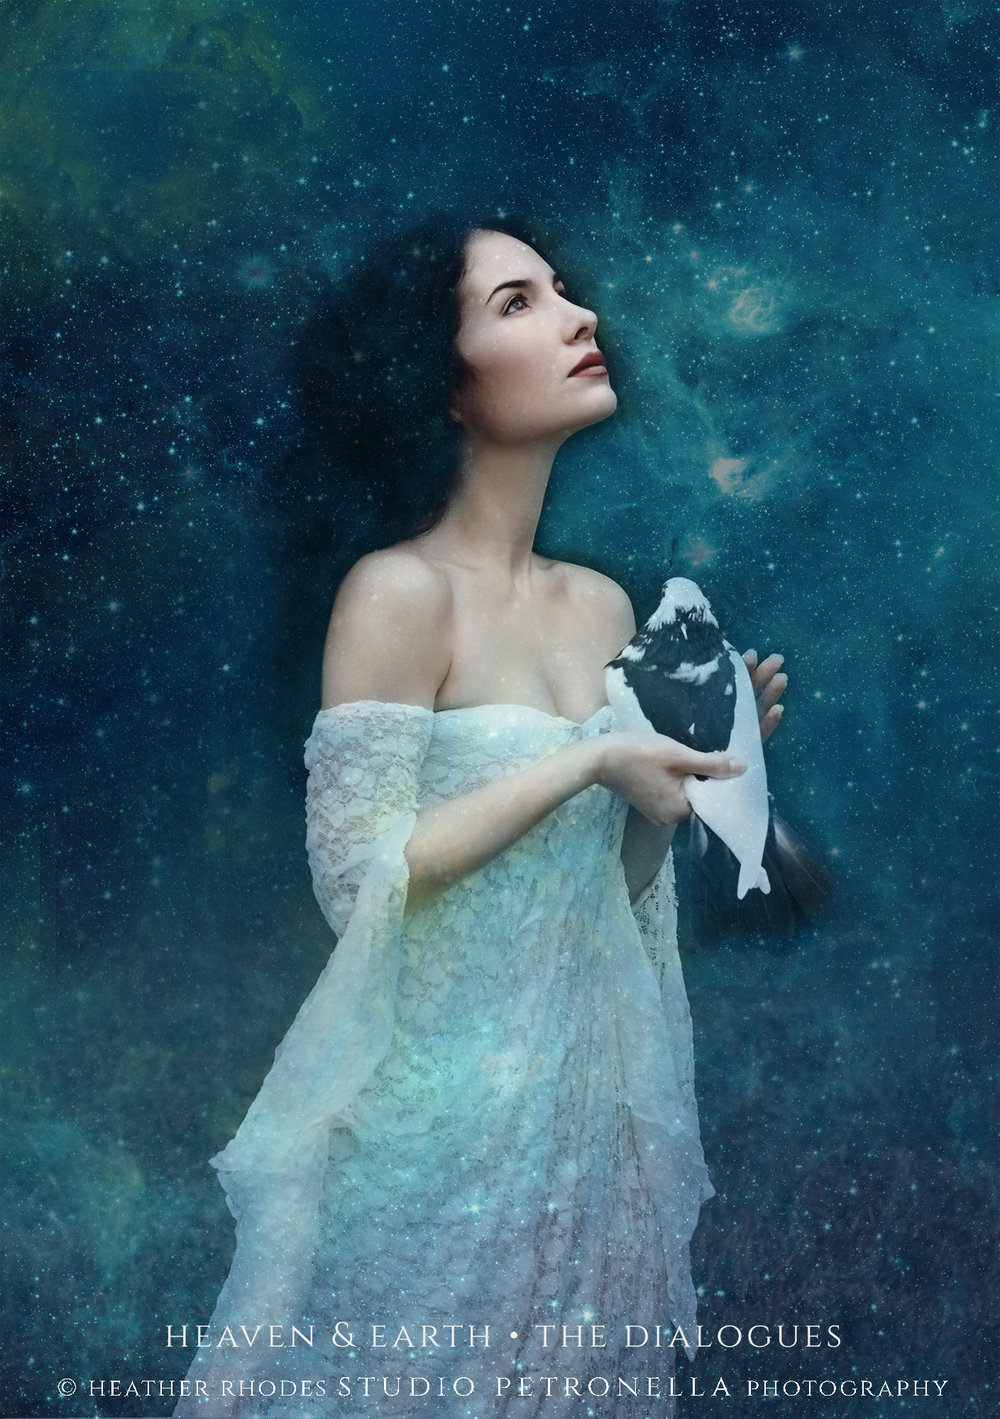 ofelia heaven and earth © heather rhodes studio petronella all rights reserved.jpg